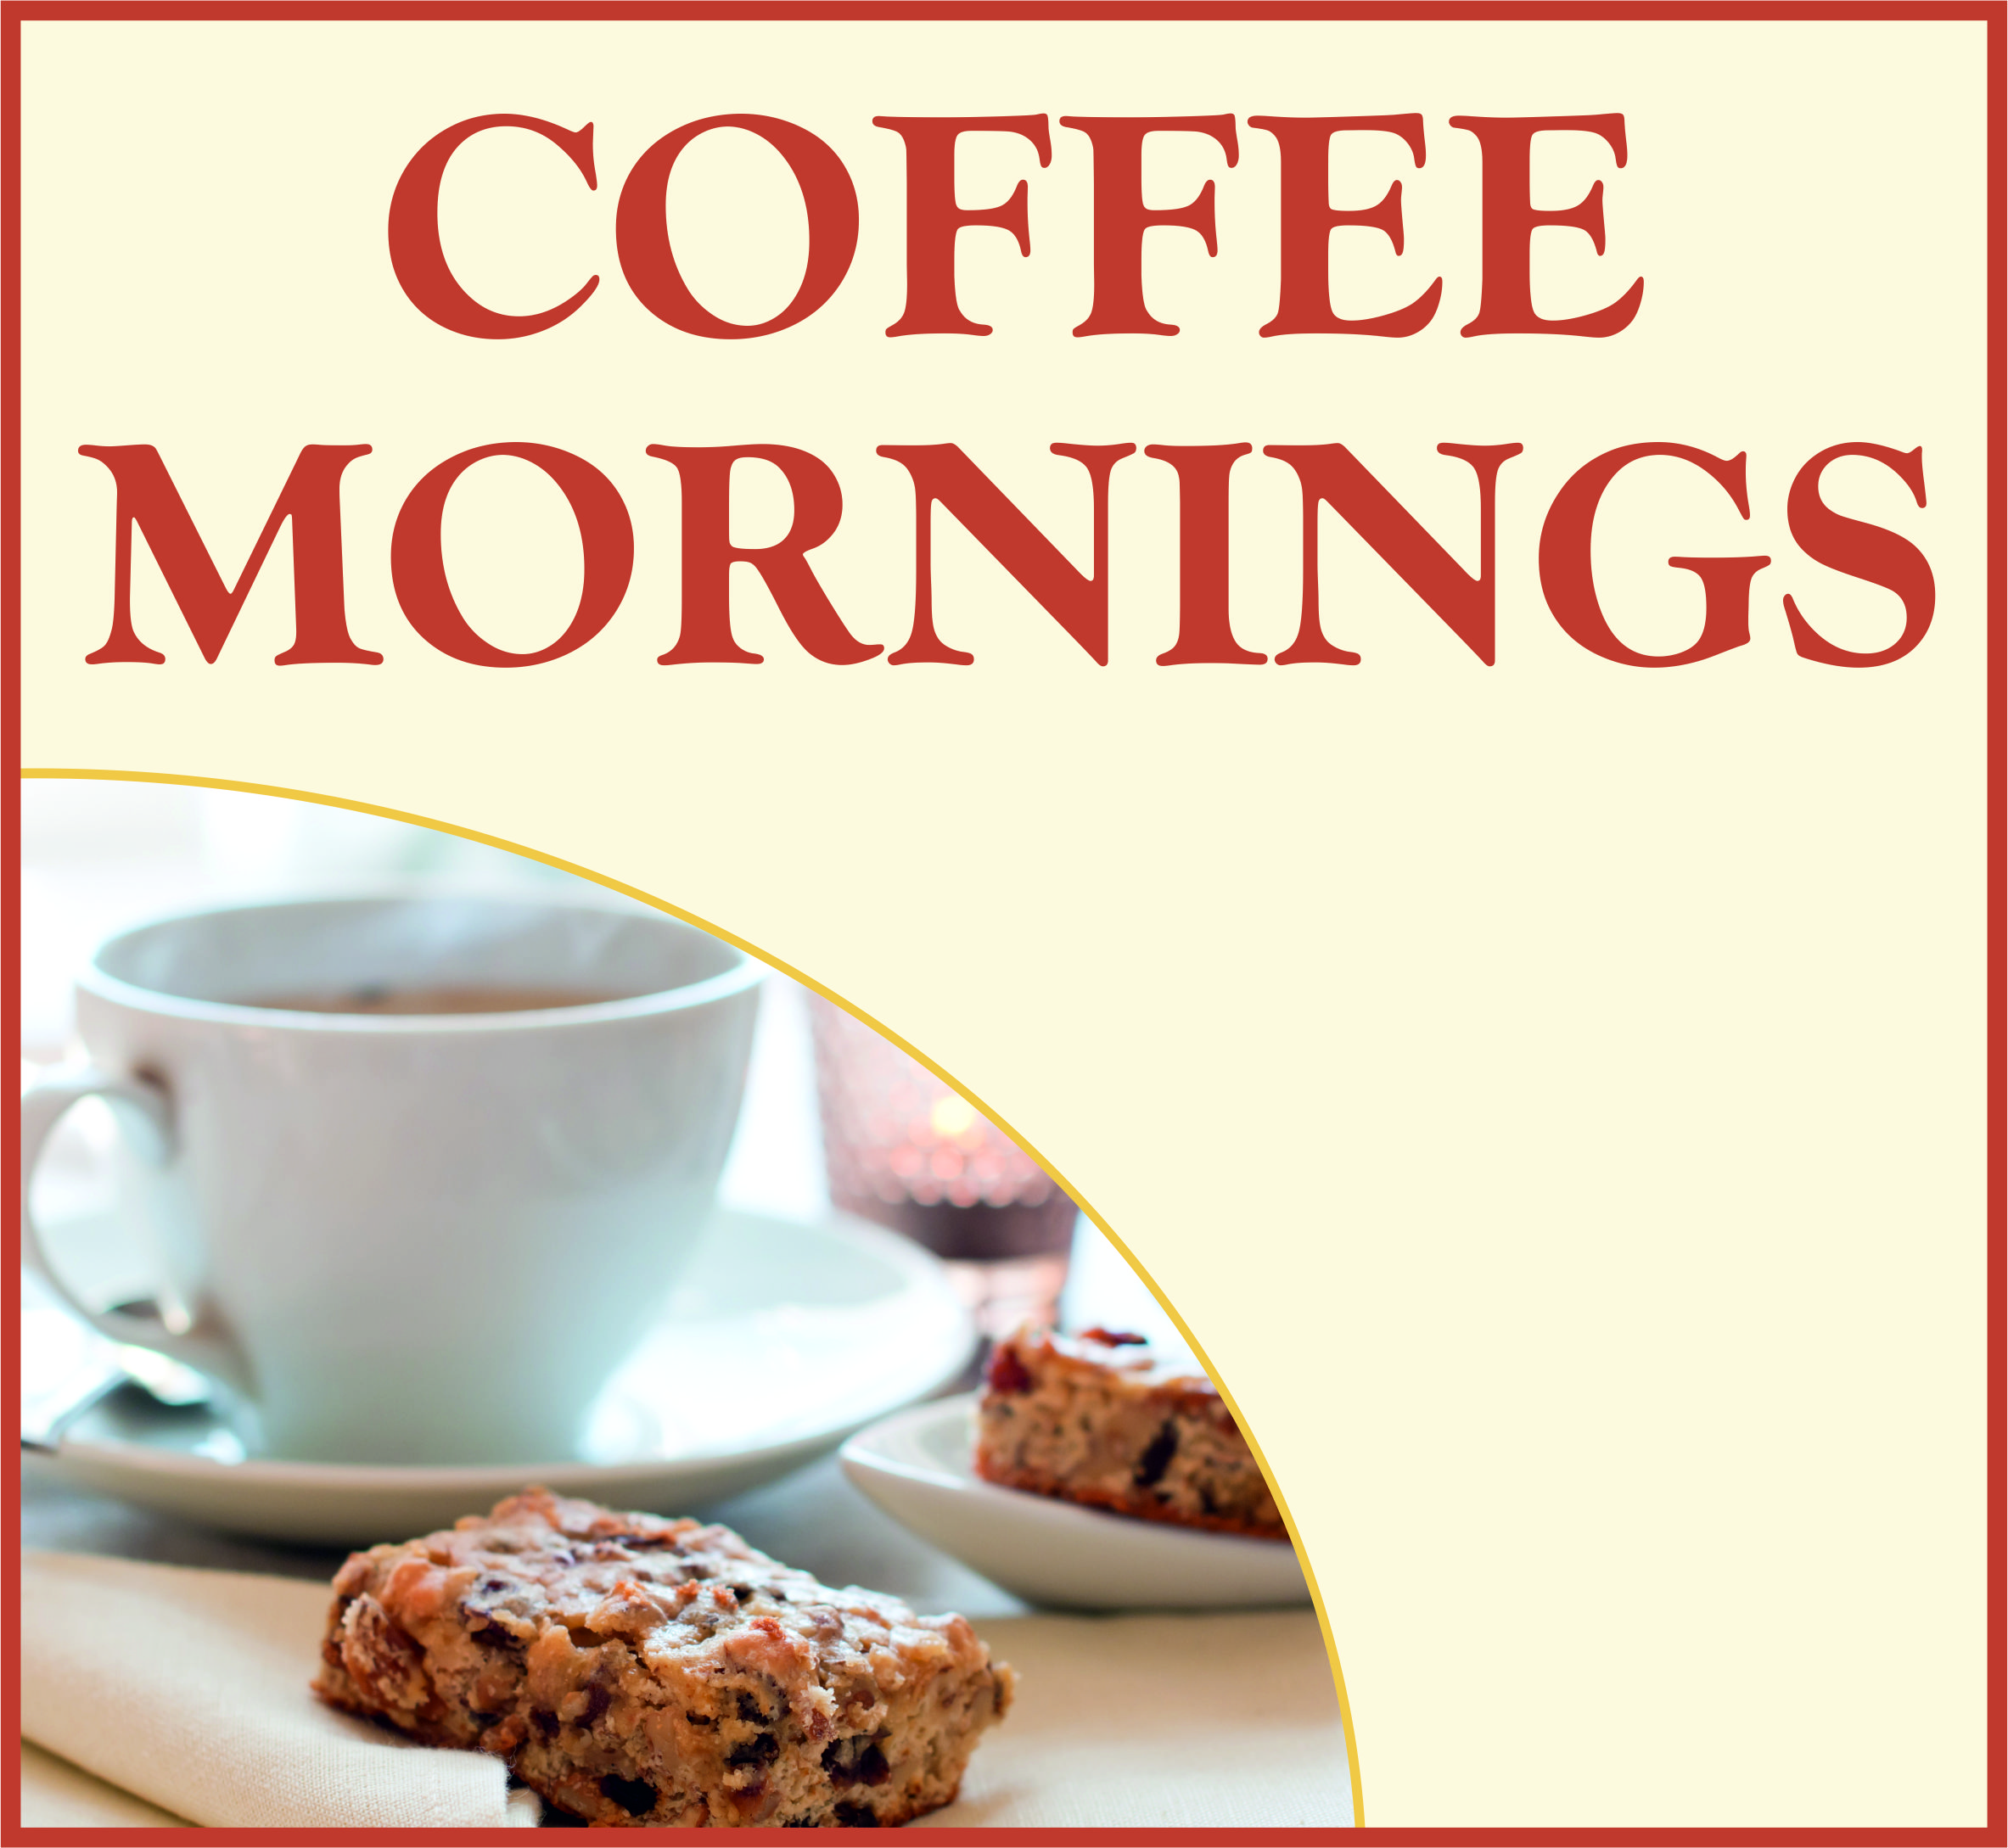 Events Template coffee mornings AB